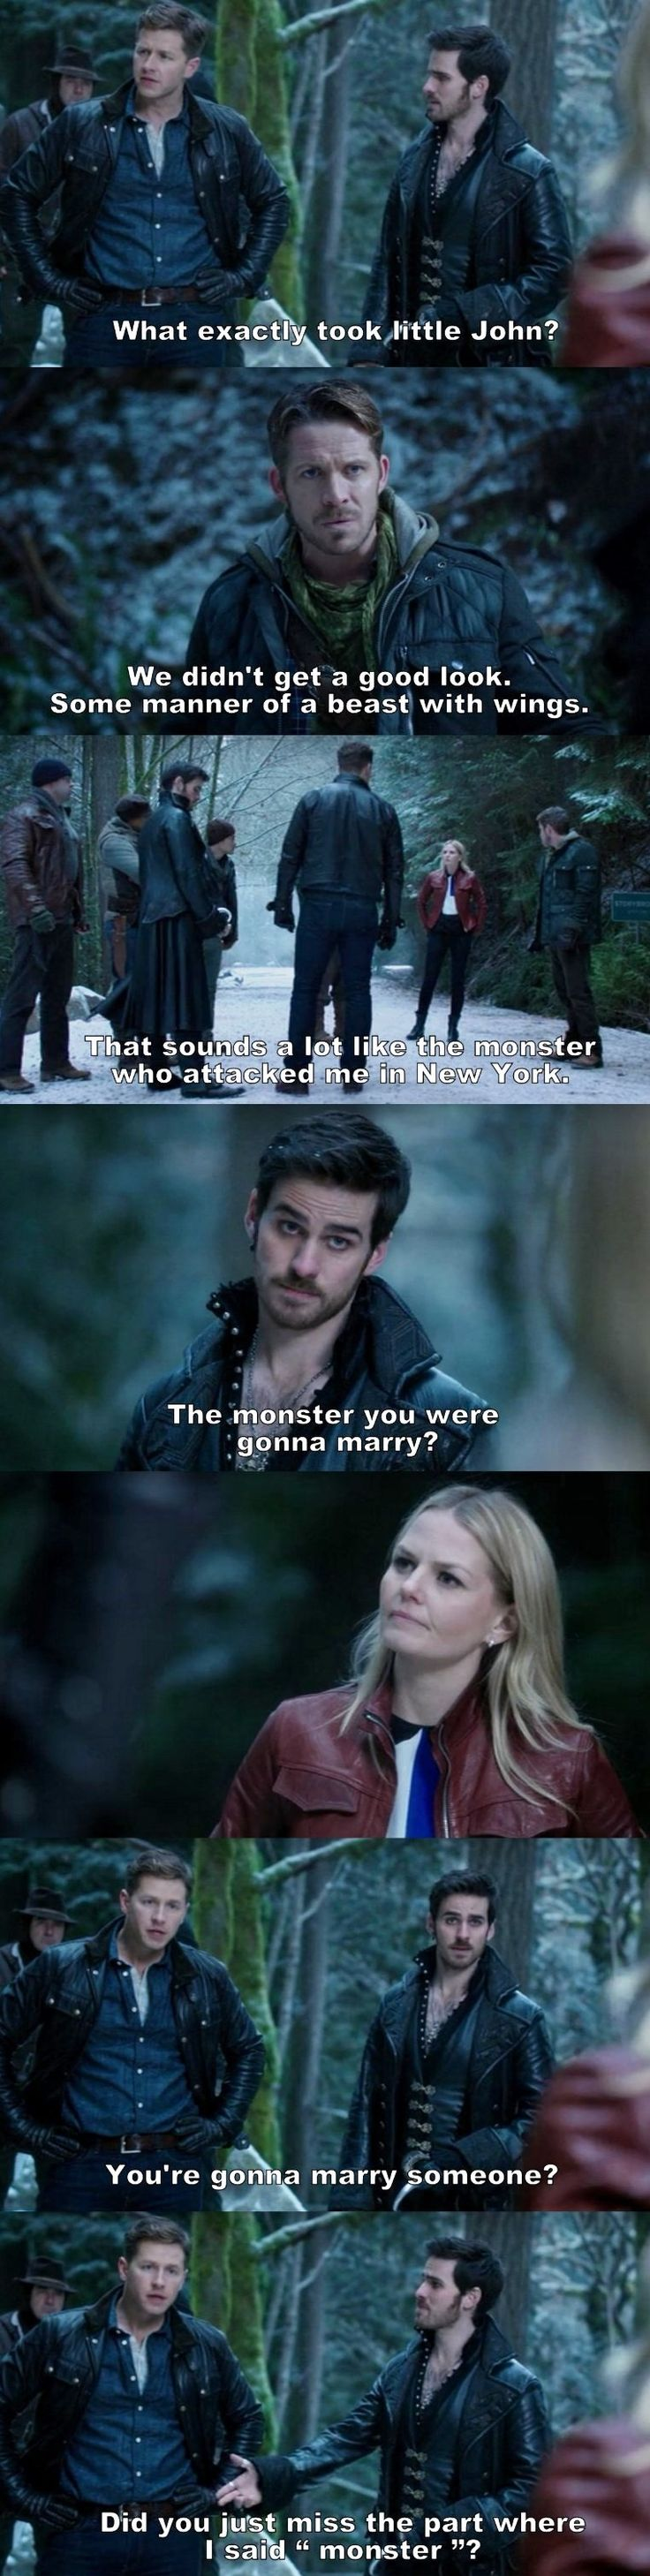 Once Upon a Time S03E13 <<< Sounding like a family already; this scene is definitely one of my Top 10 favorites!